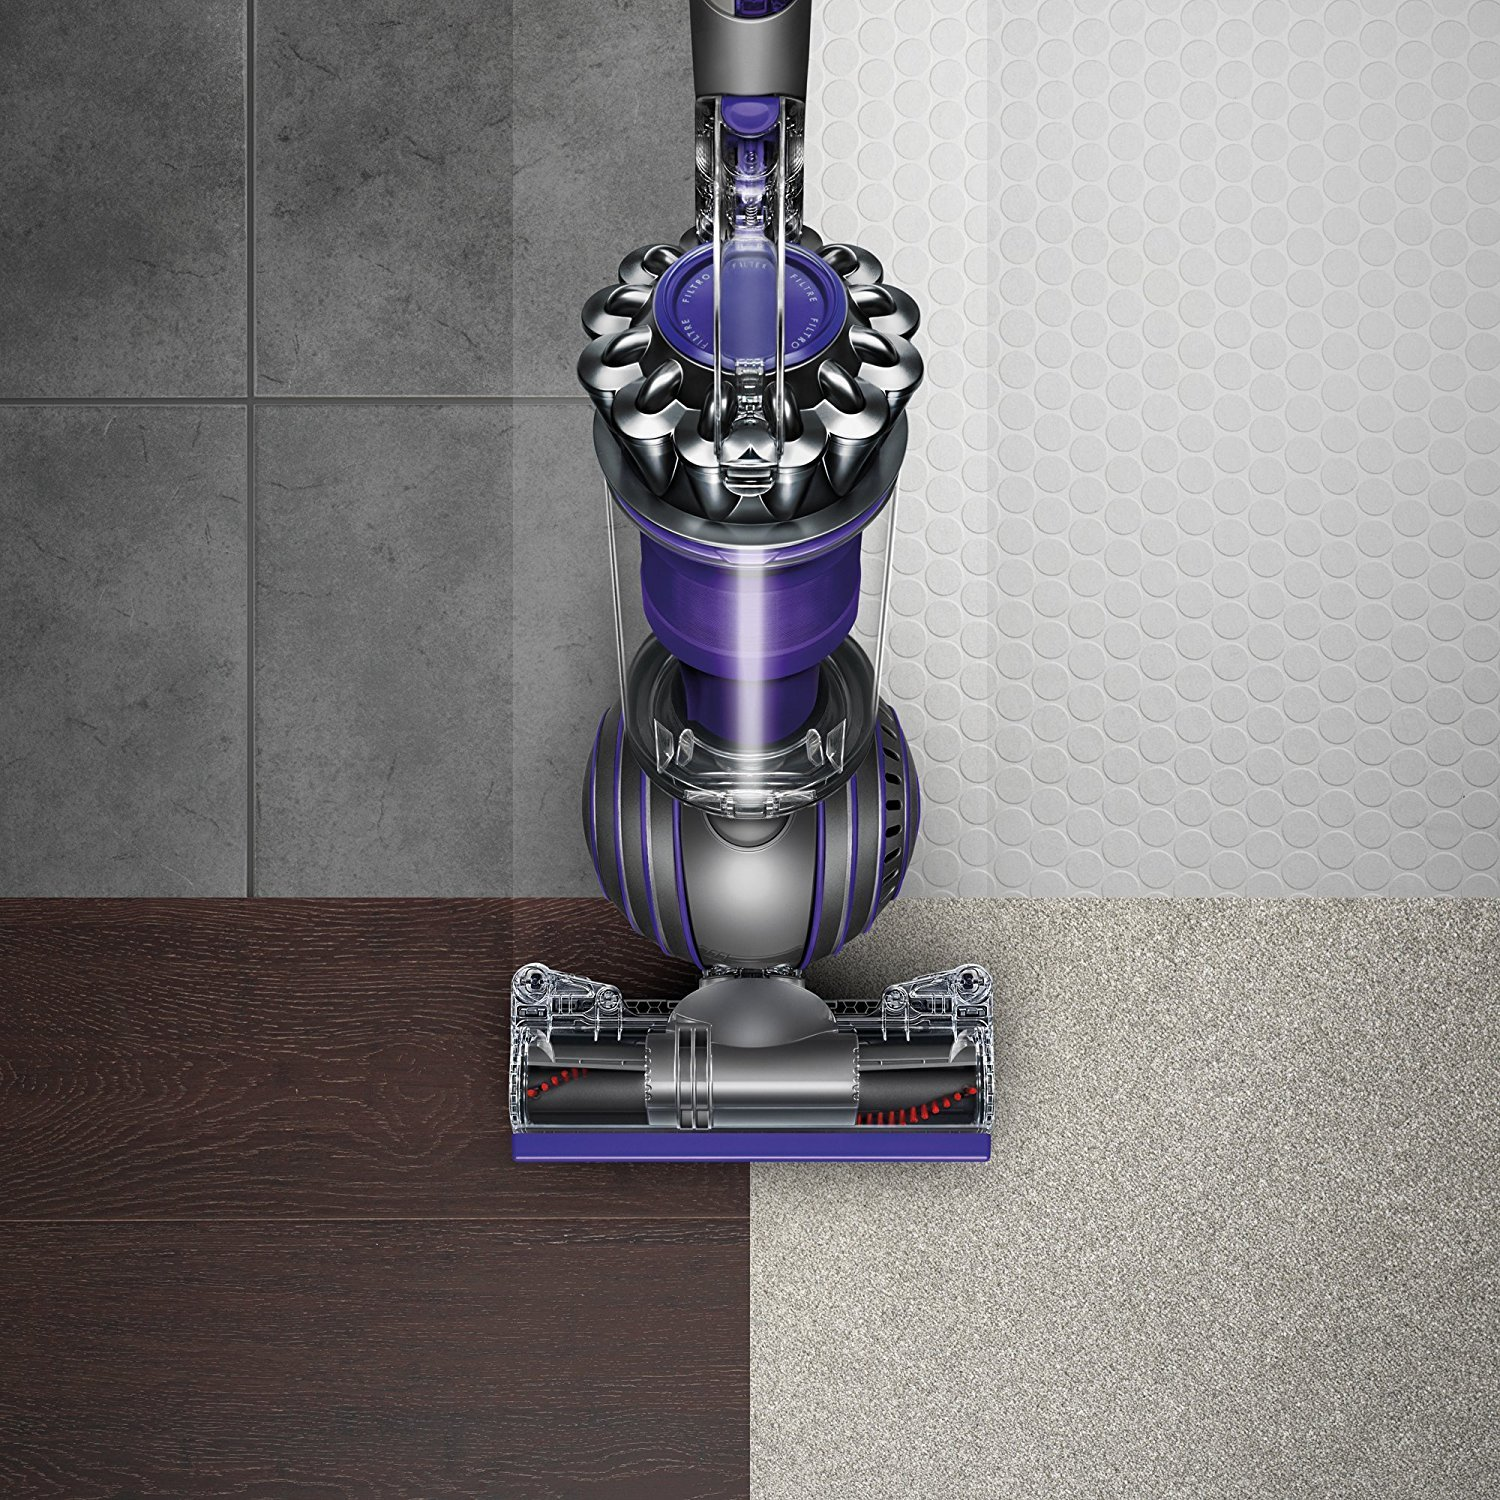 Dyson Ball Animal 2 Upright Vacuum, Iron/Purple (Certified Refurbished) by Dyson (Image #4)